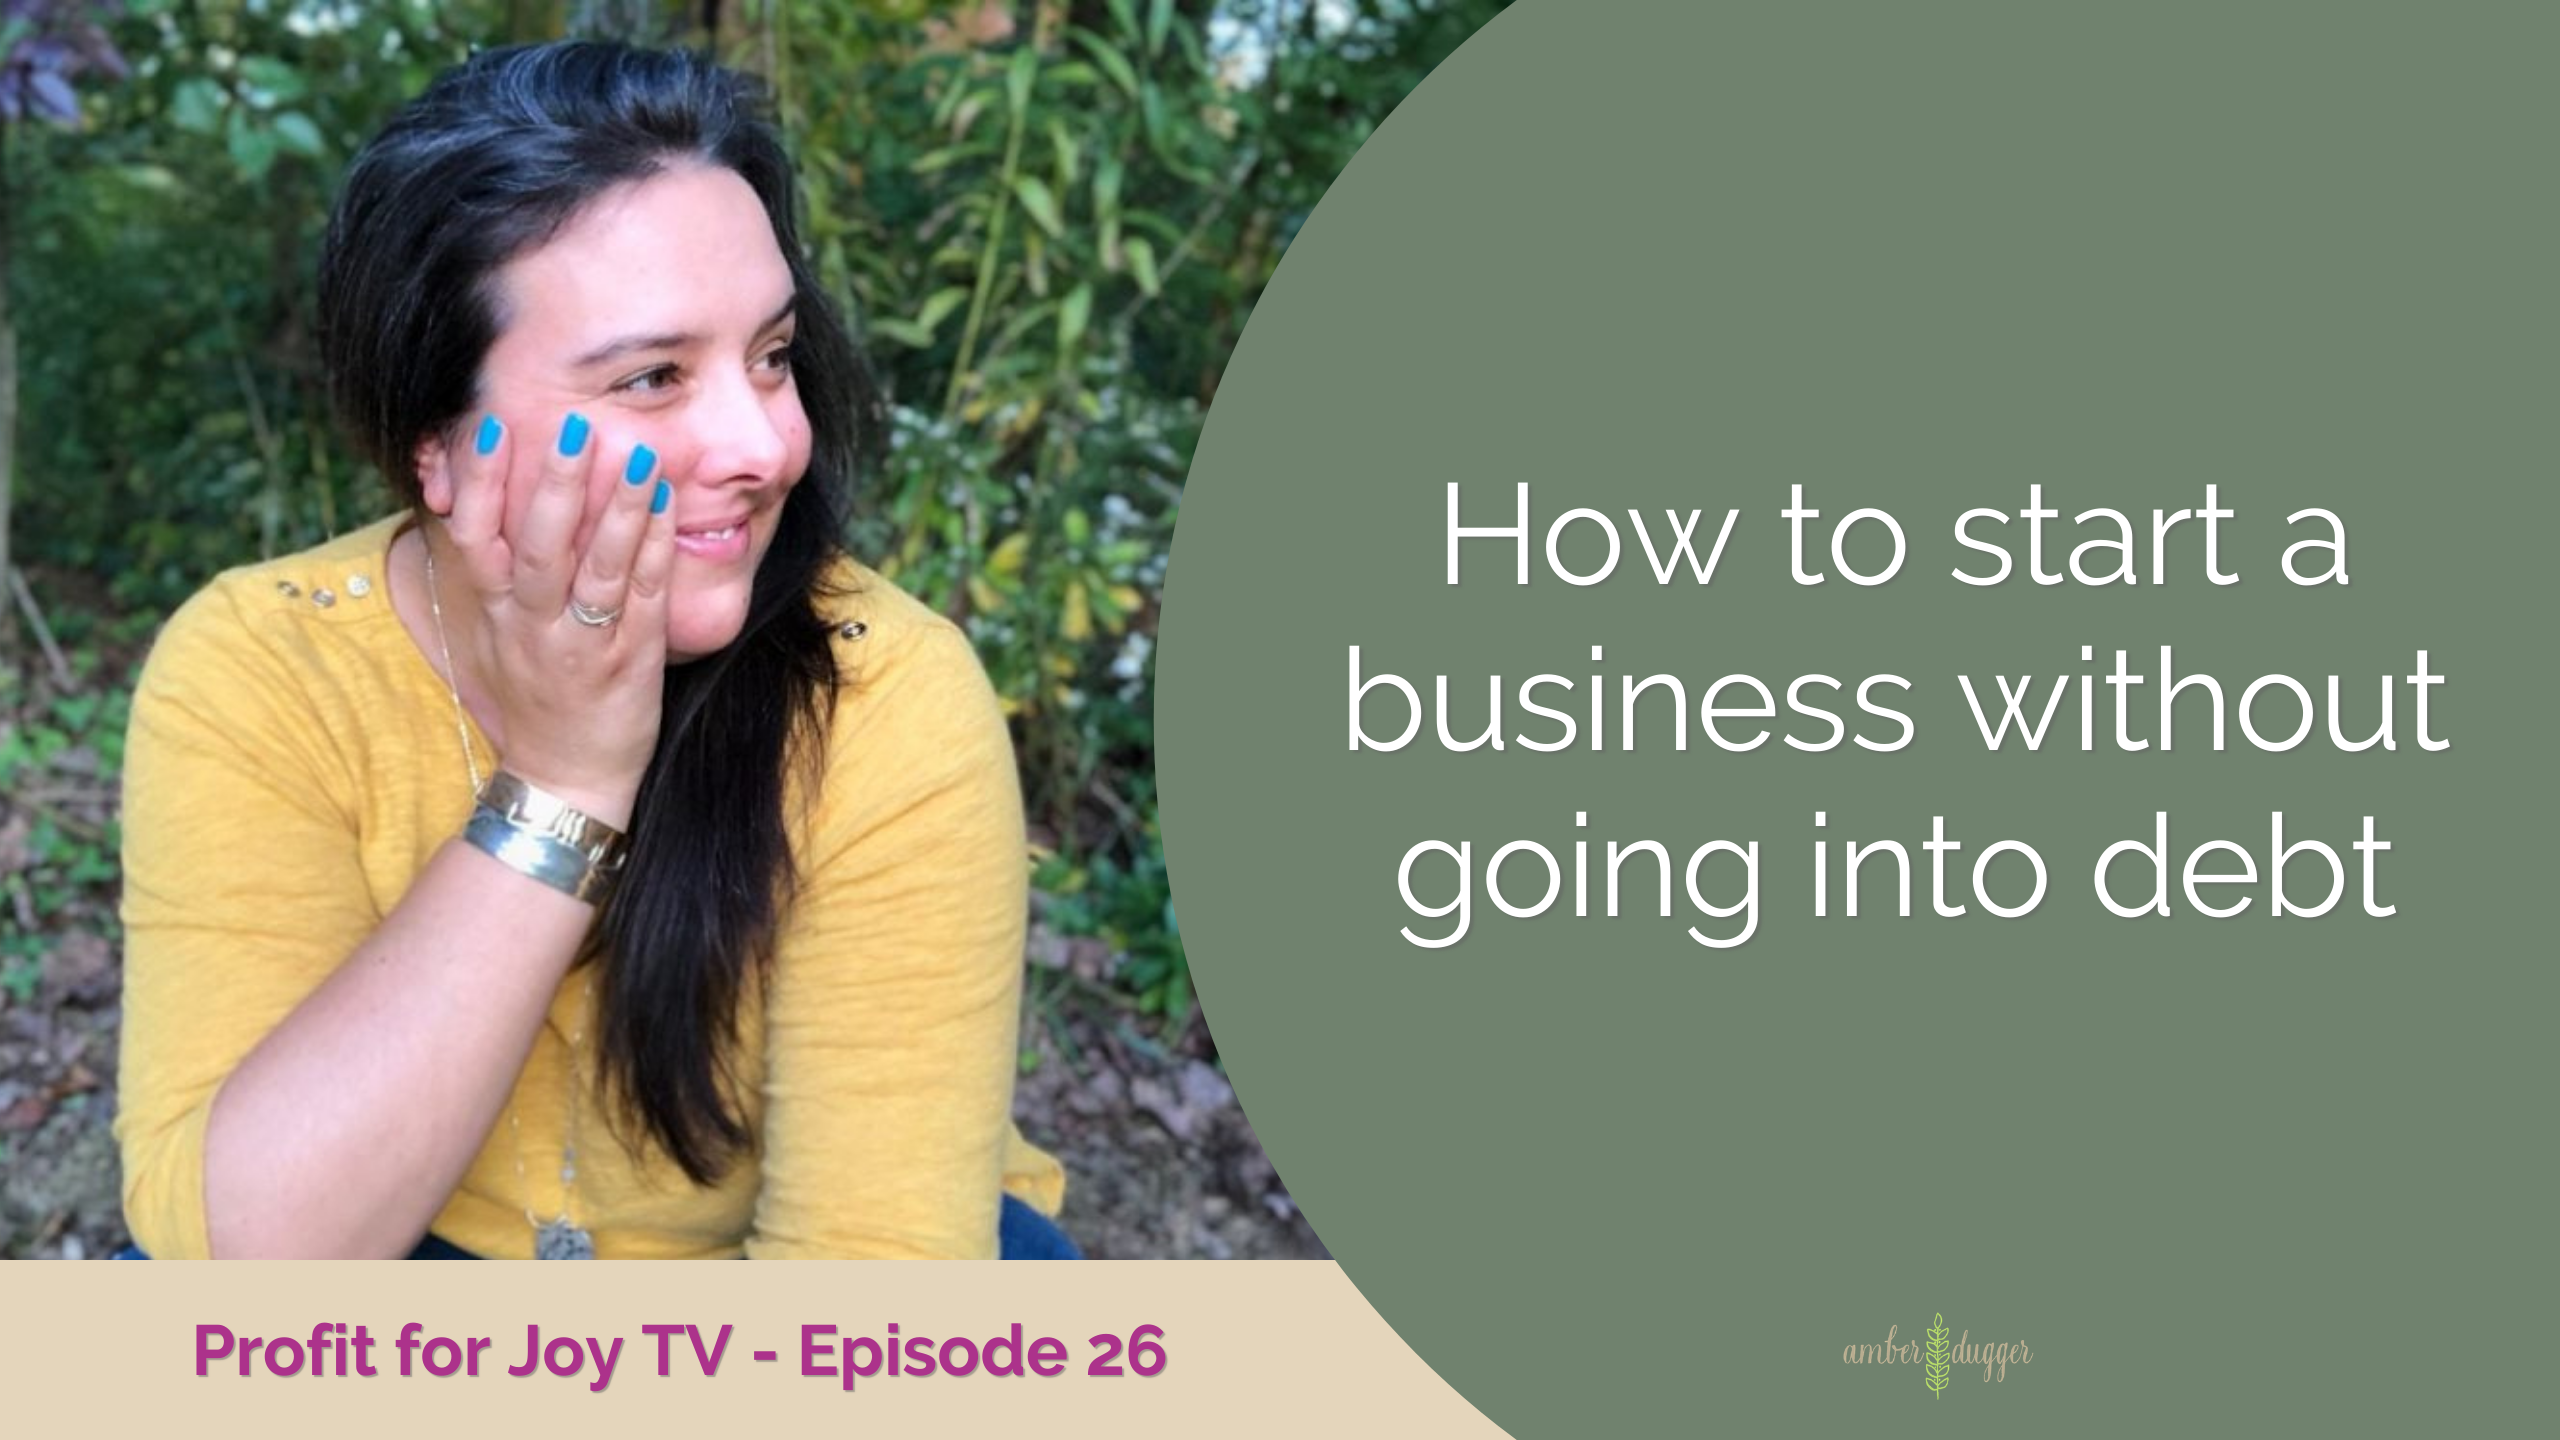 How to start a business without going into debt